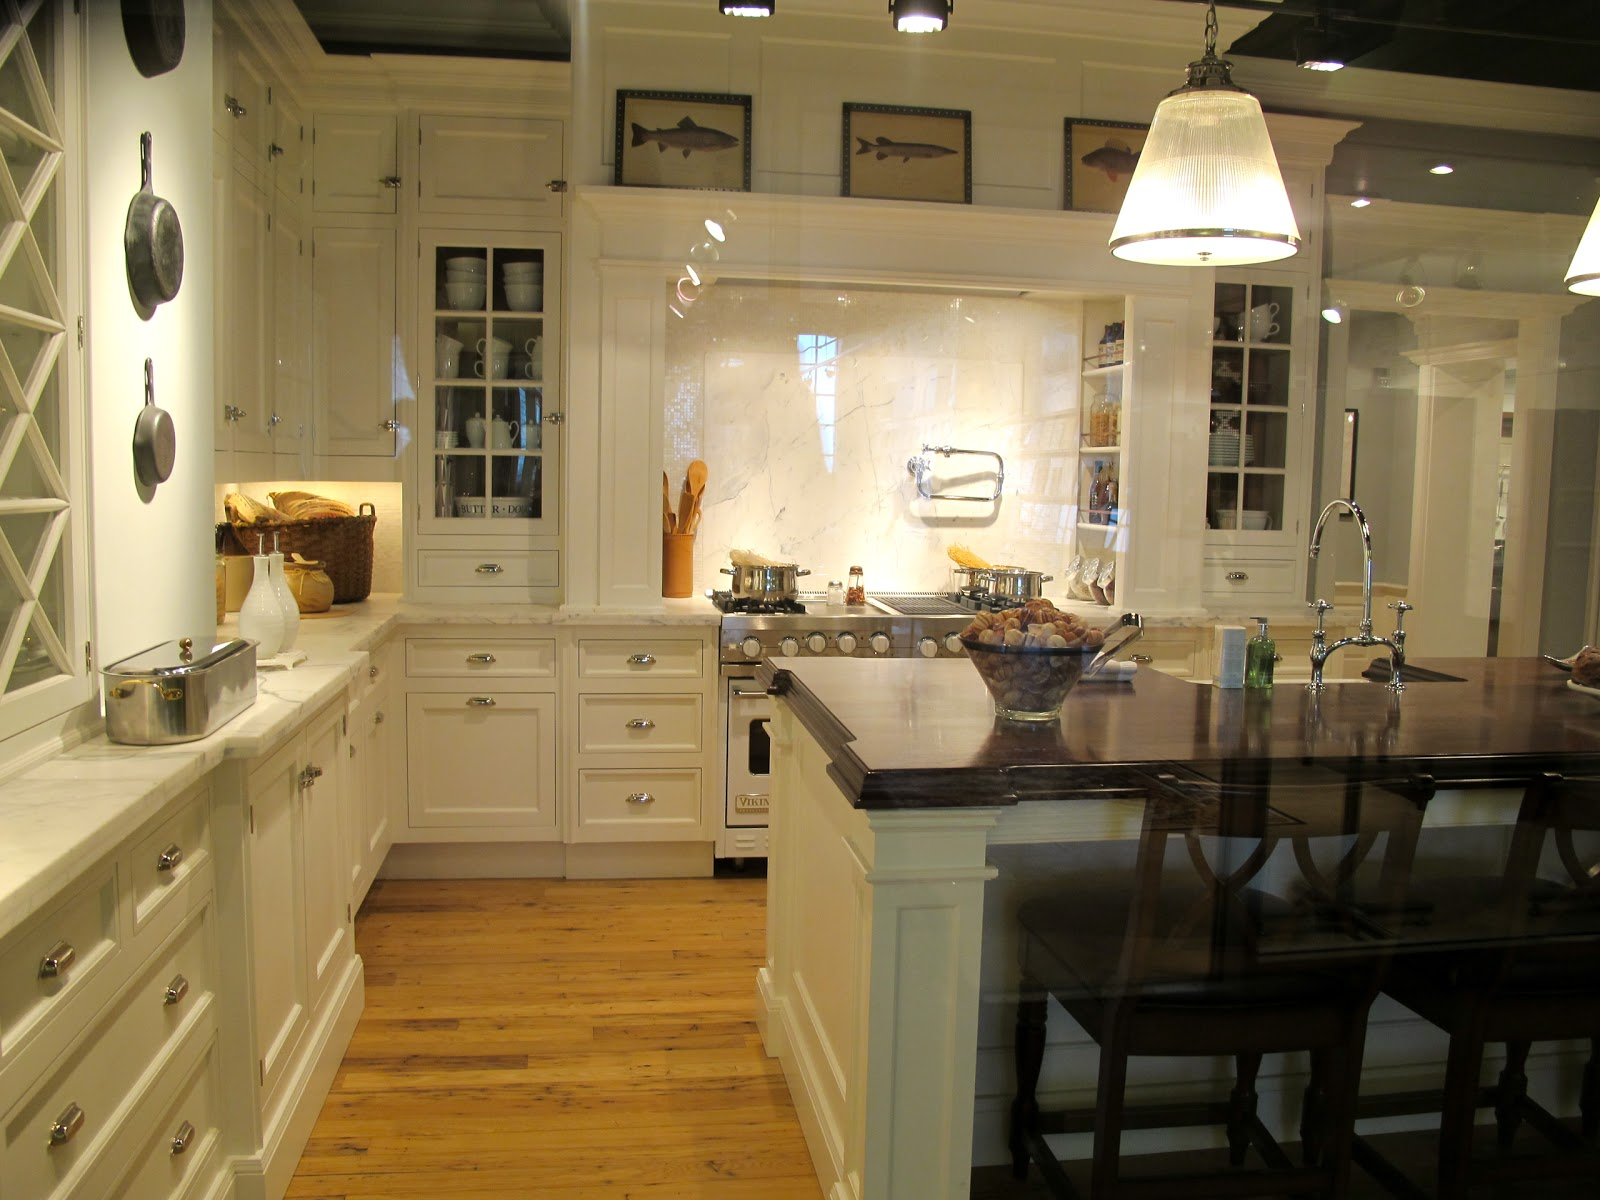 Jenny steffens hobick kitchens the most amazing for Kitchen remodel design